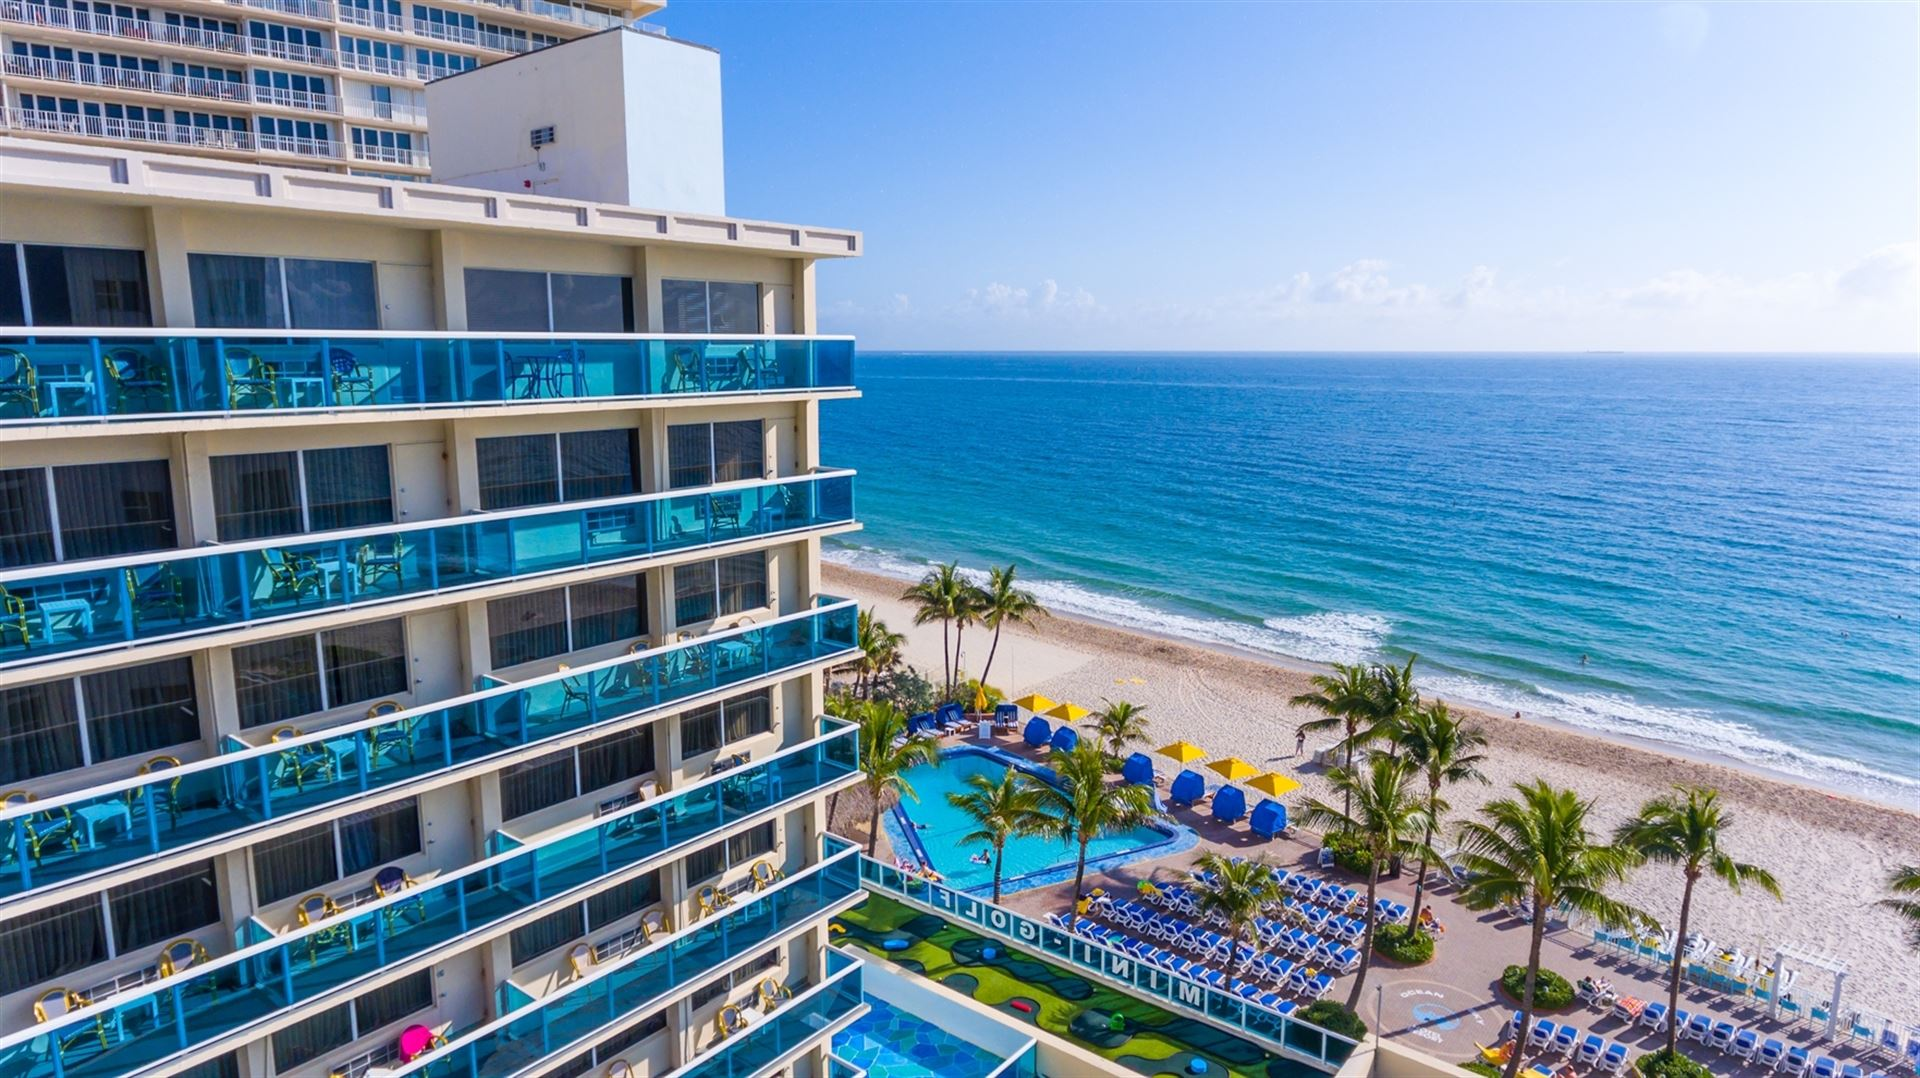 Fort lauderdale hotel photos ocean sky hotel and resort for Pool design fort lauderdale